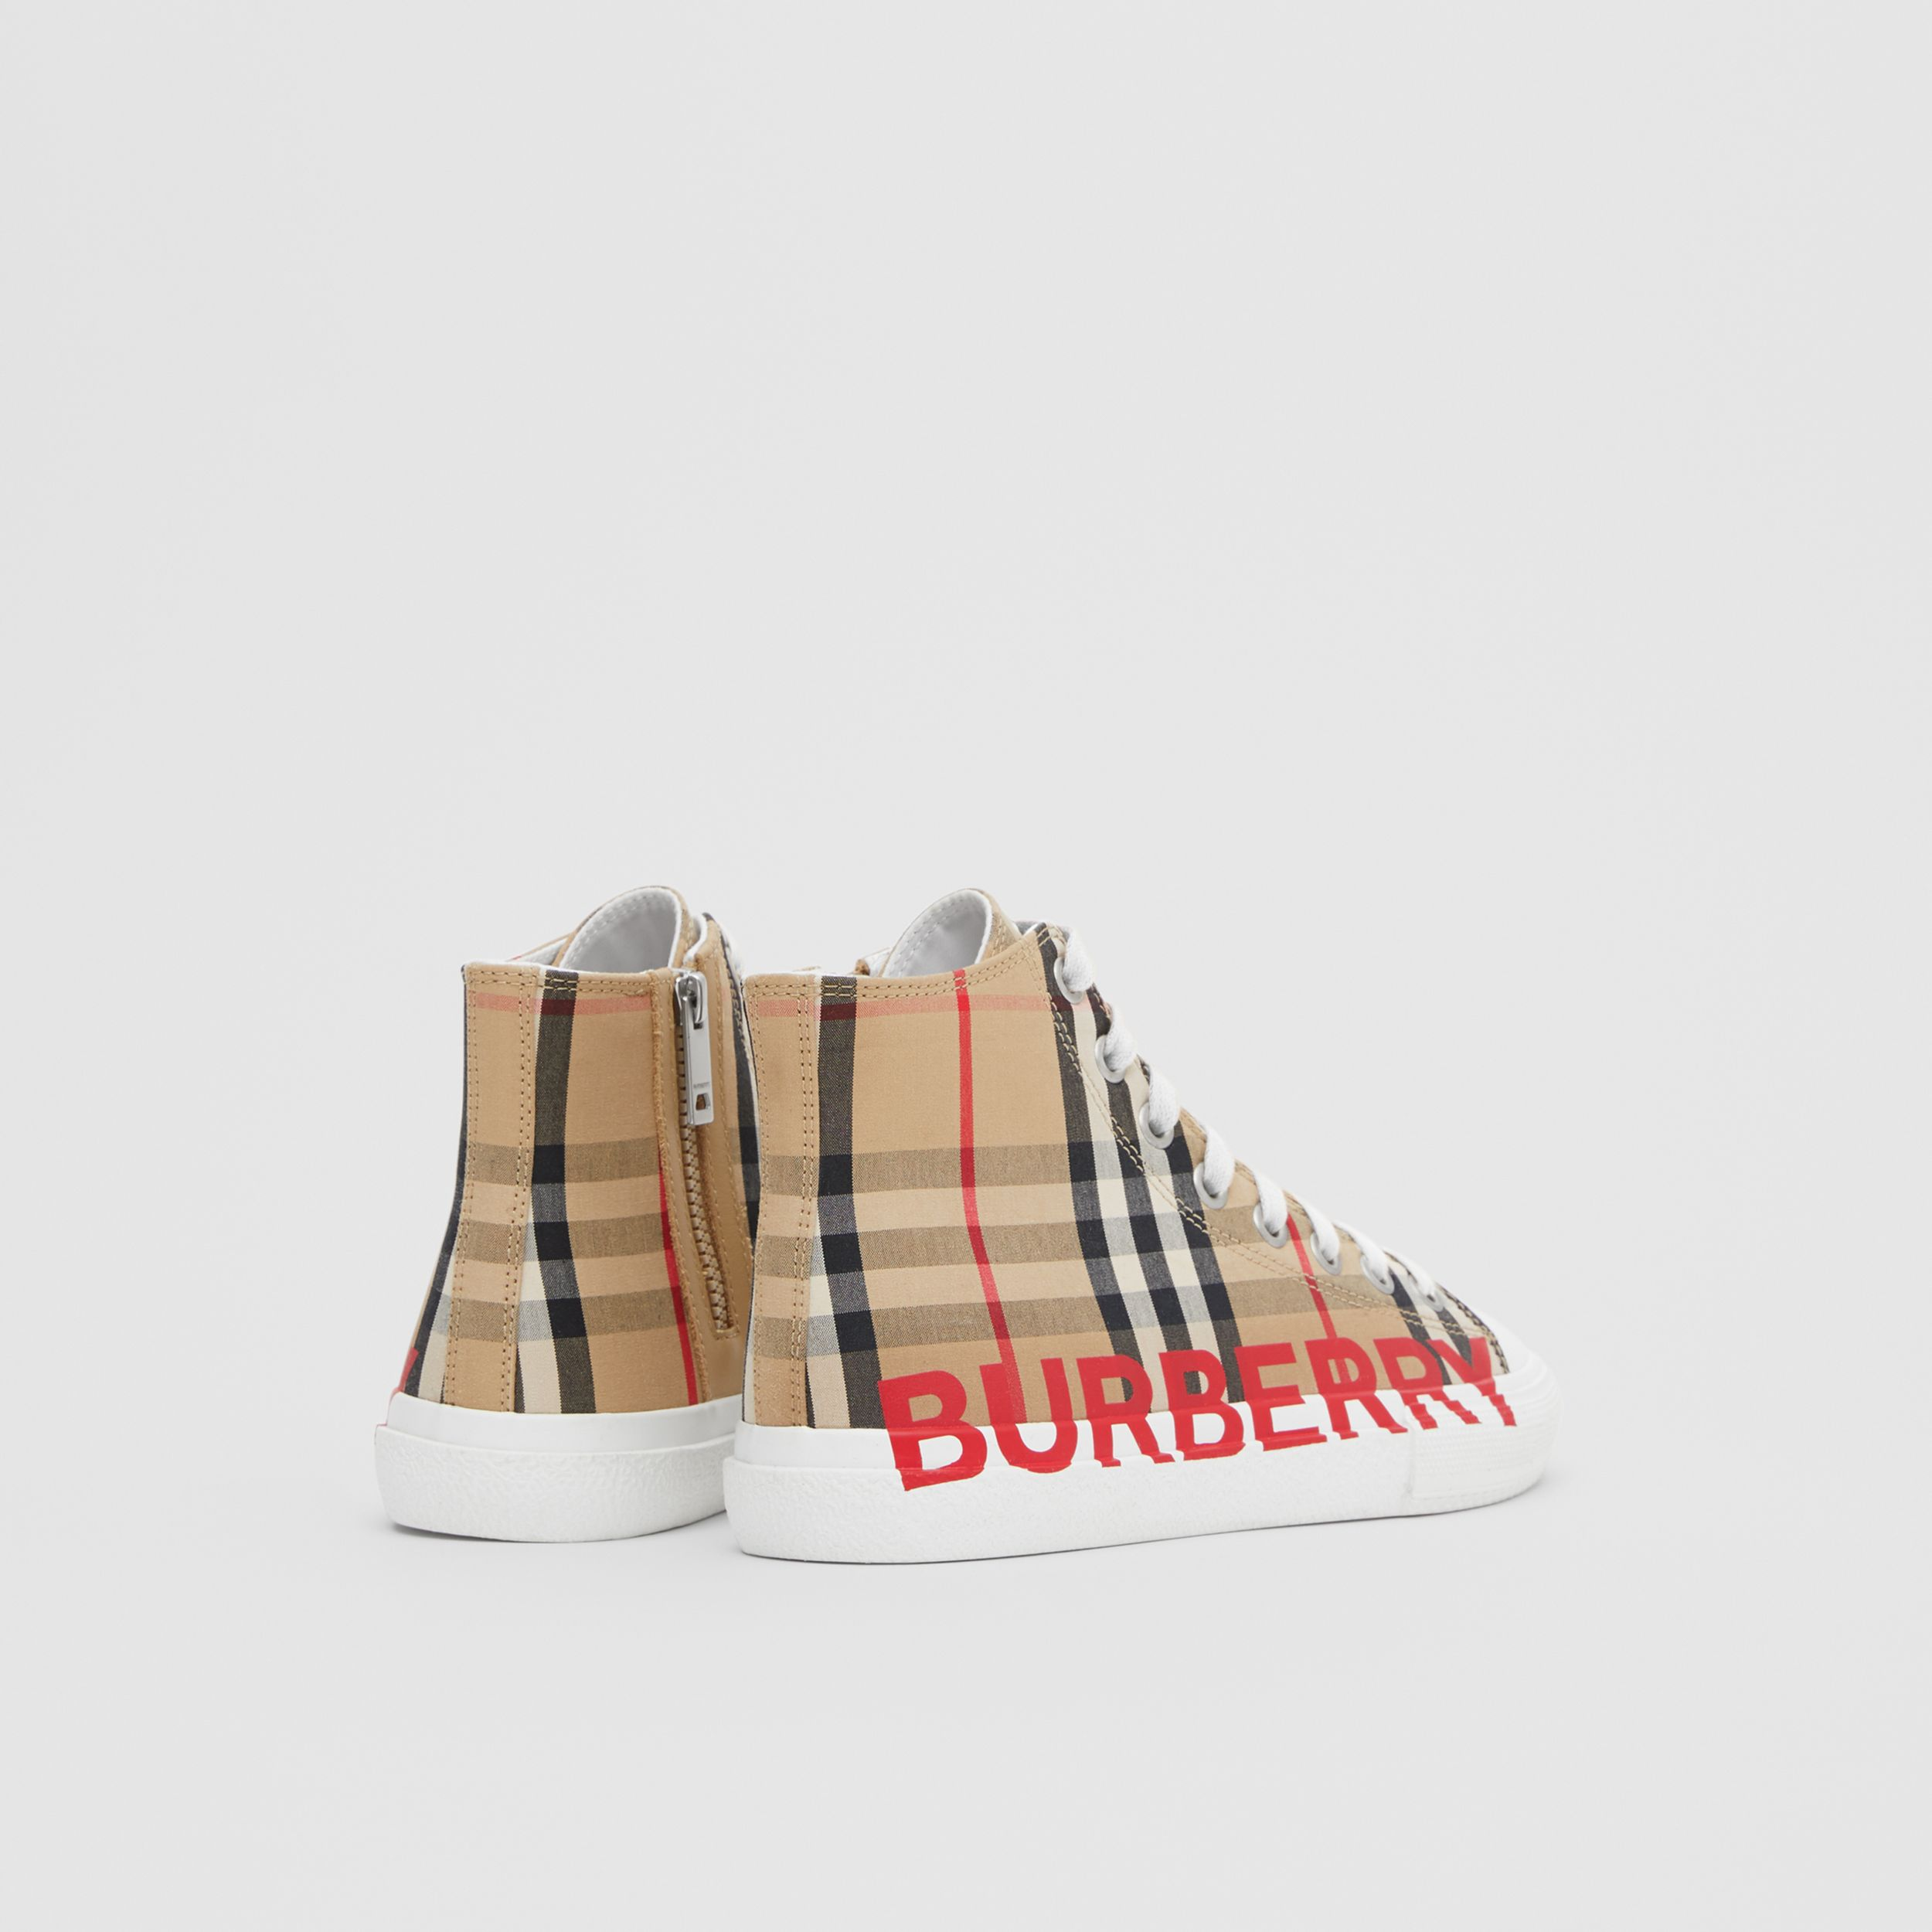 Logo Print Vintage Check High-top Sneakers in Archive Beige - Children | Burberry Hong Kong S.A.R. - 3